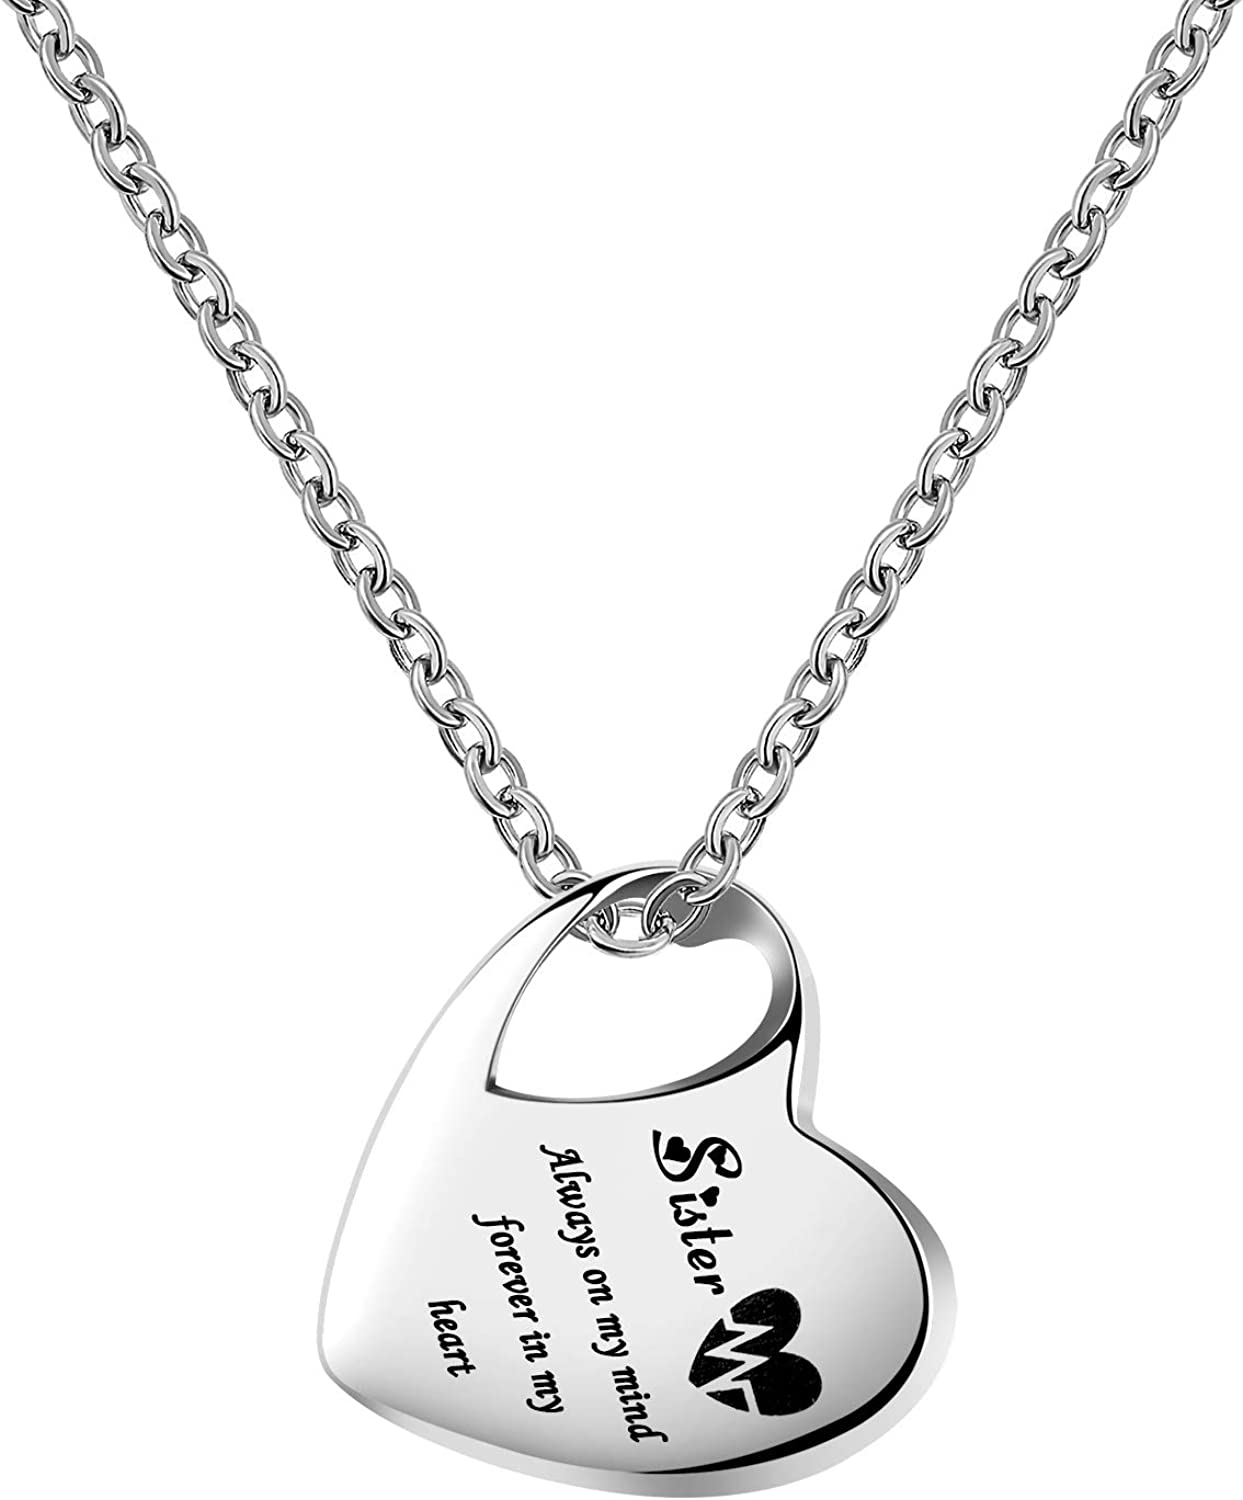 YSAHan Heart Urn Necklace for Ashes Sister Son Grandma Mom Cremation Stainless Steel Jewelry Engraved Always on My Mind Forever in My Heart Memorial Pendant